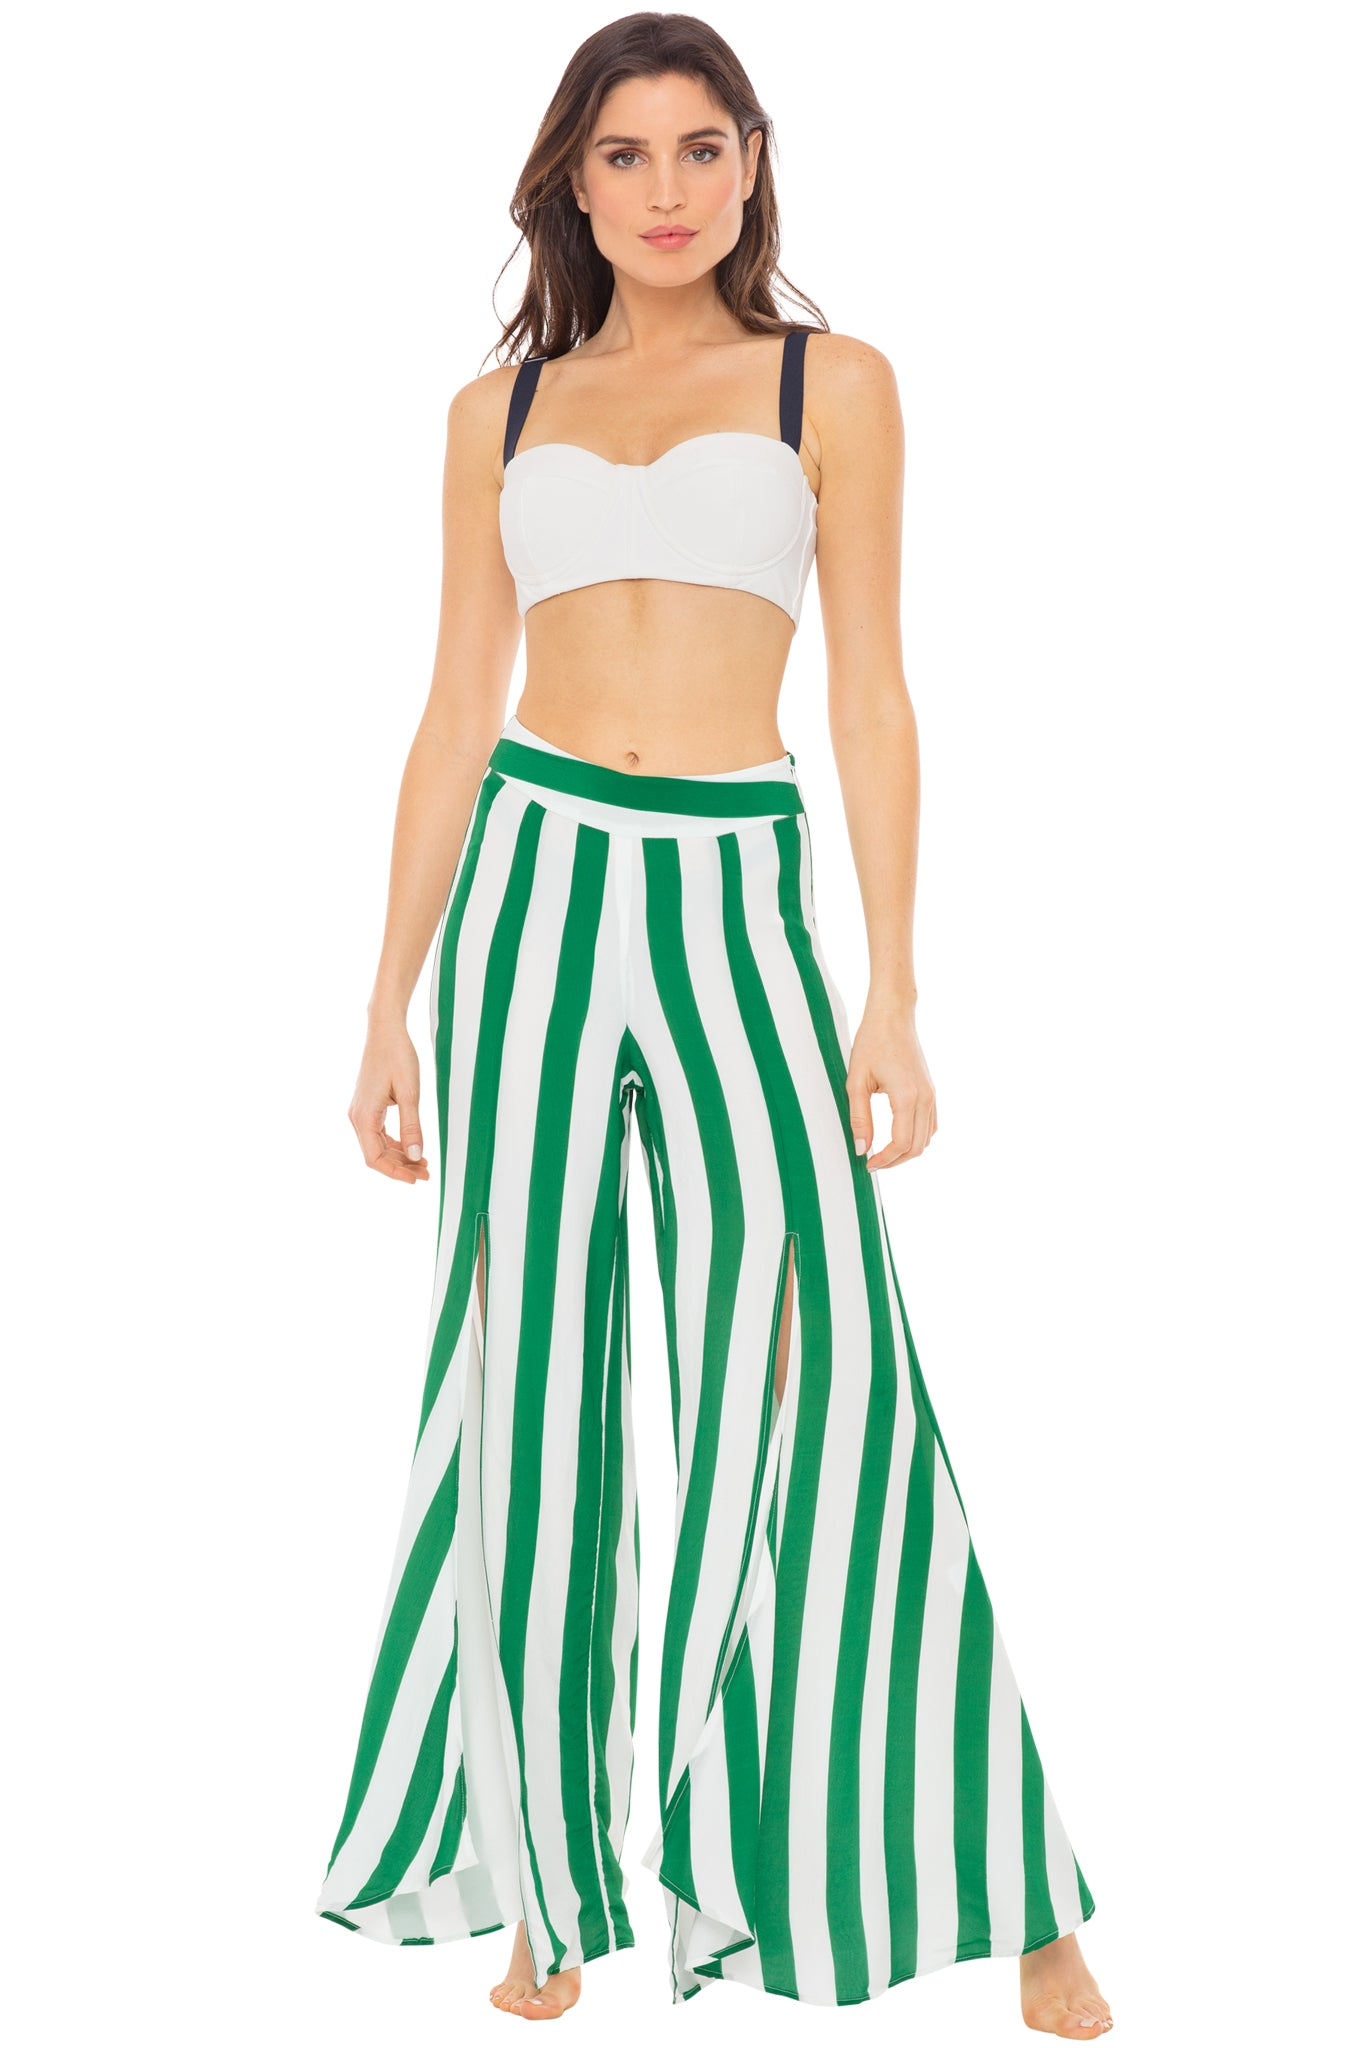 Kelly Sway Pants - Billiard